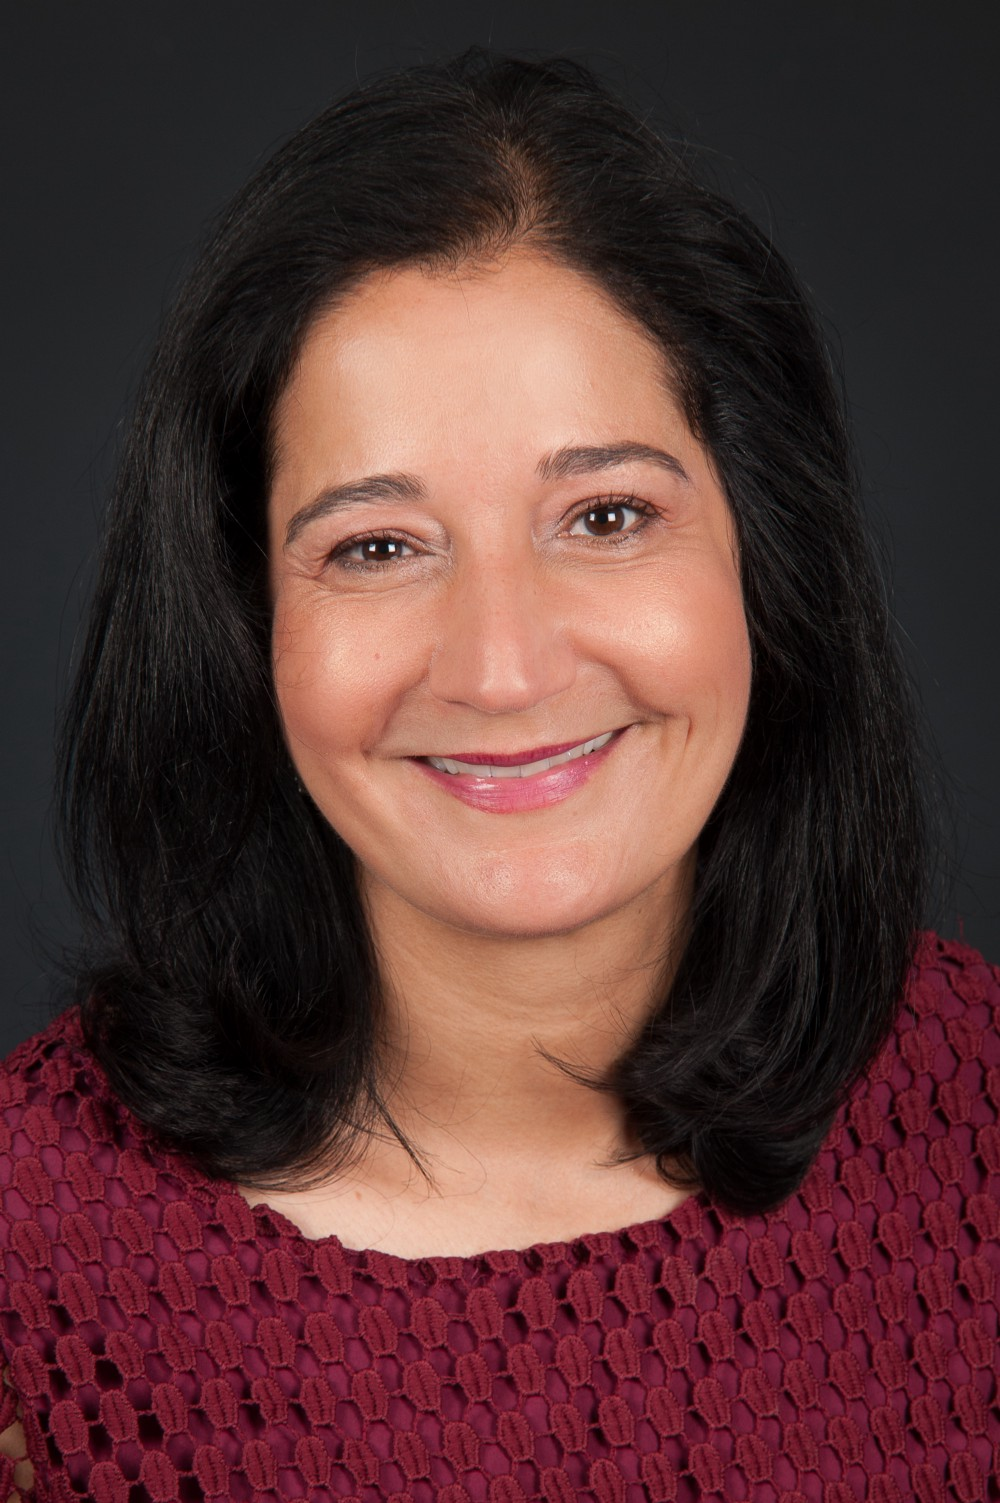 Headshot of Dr. Anne-Marie Balzano. Ari Betof and Kelsey Vrooman announced that Dr. Anne-Marie Balzano will be joining Mission & Data as Senior Governance Strategist,